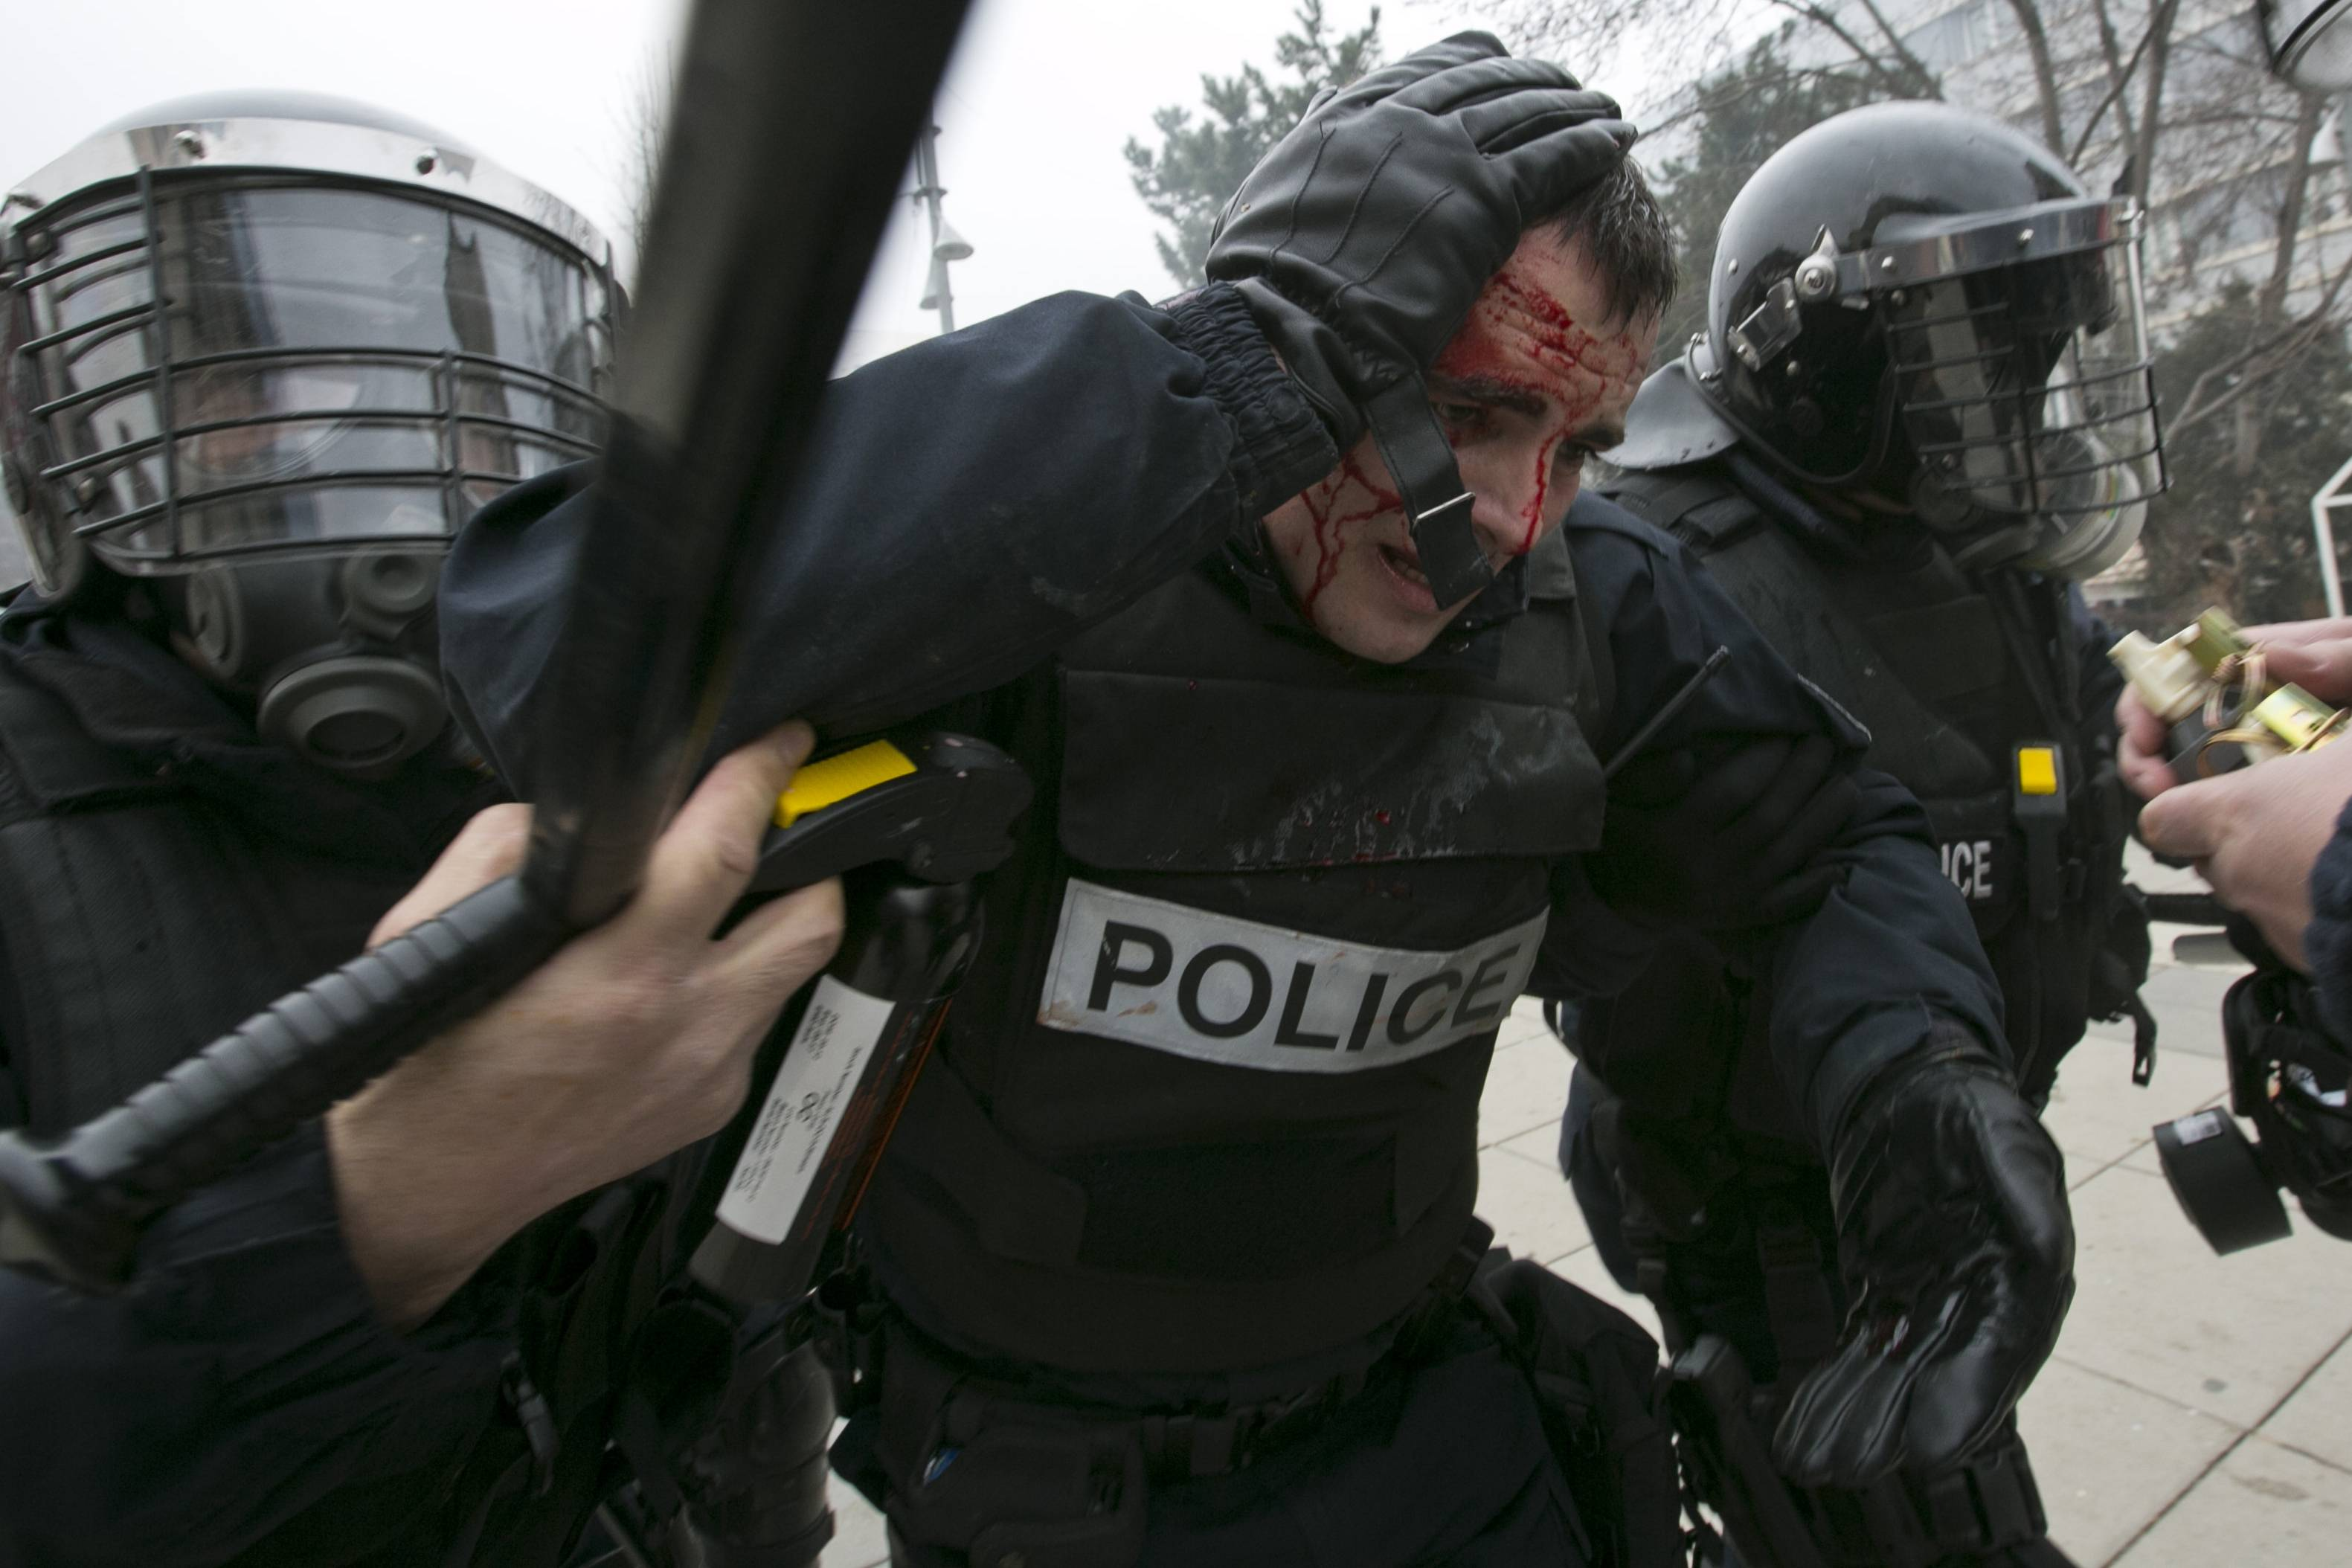 An injured police officer is helped by colleagues during a protest in Kosovo's capital Pristina, Tuesday, Jan. 27, 2015. Police in Kosovo fired volleys of tear gas at thousands of anti-government protesters demanding the resignation of a minister who had denied that war crimes were committed against ethnic Albanians during the 1998-99 war with Serbia.